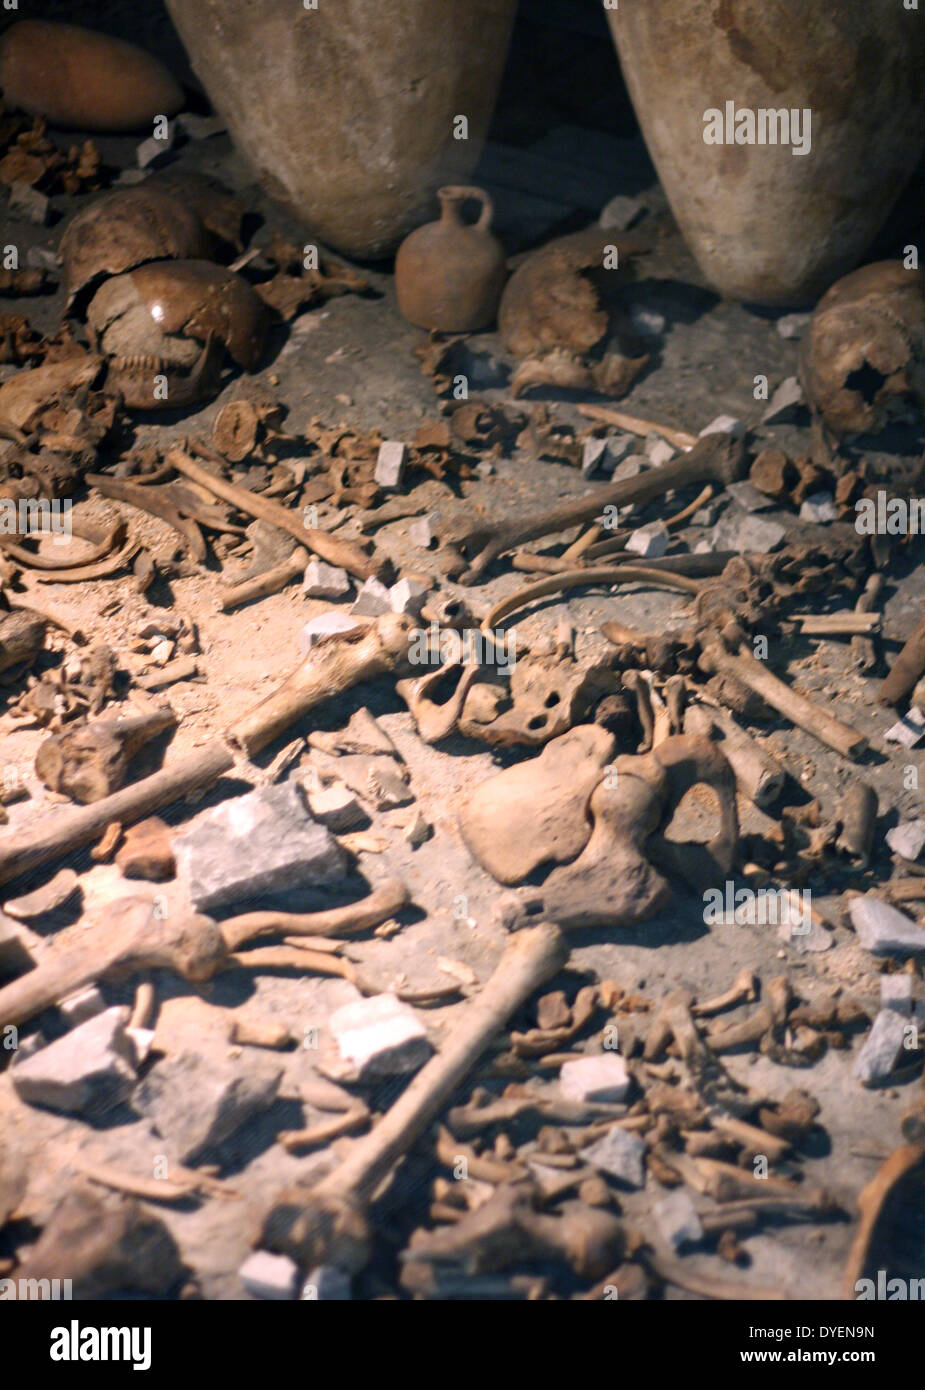 Jericho Tomb G1 (Bronze age tomb from 1700BC rediscovered in the 1950's. contains alabaster jars, bones and wooden objects. - Stock Image